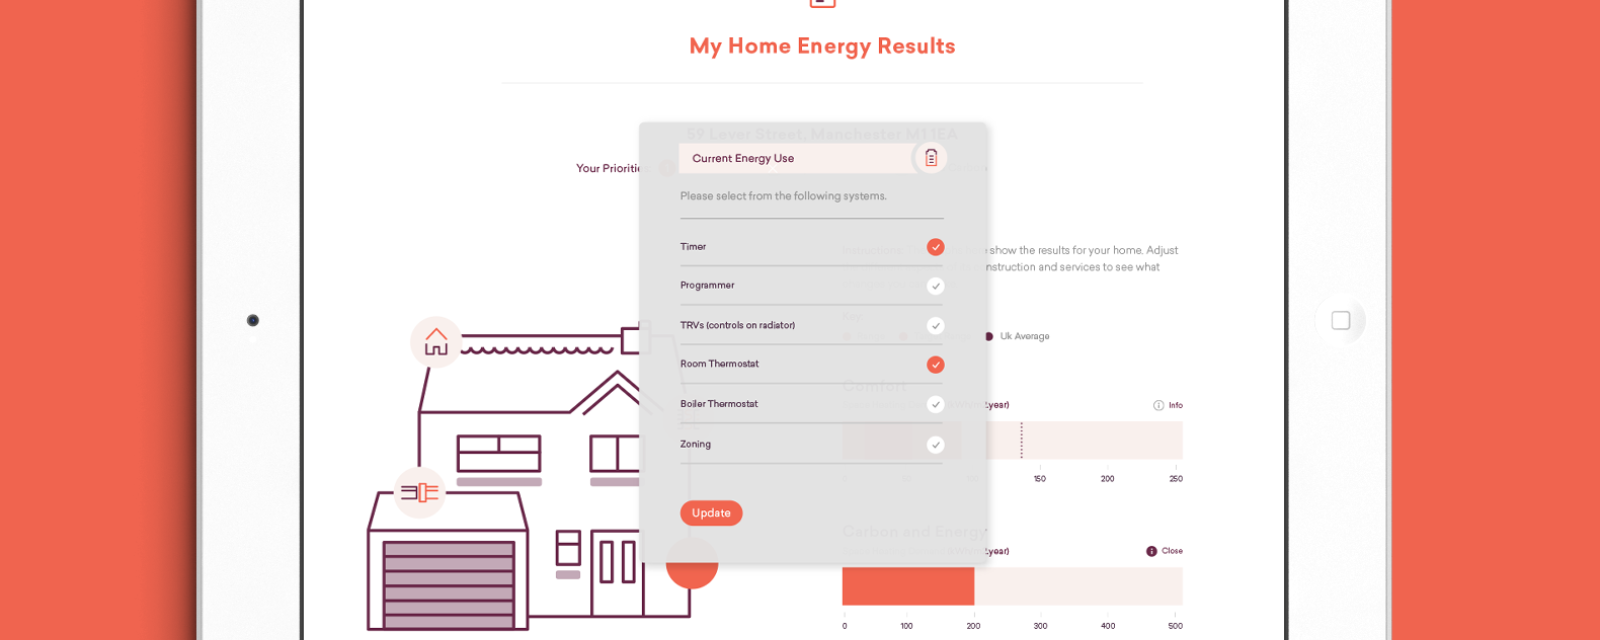 Making adjustments to setting on an iPad, using the My Home Energy Planner online tool.